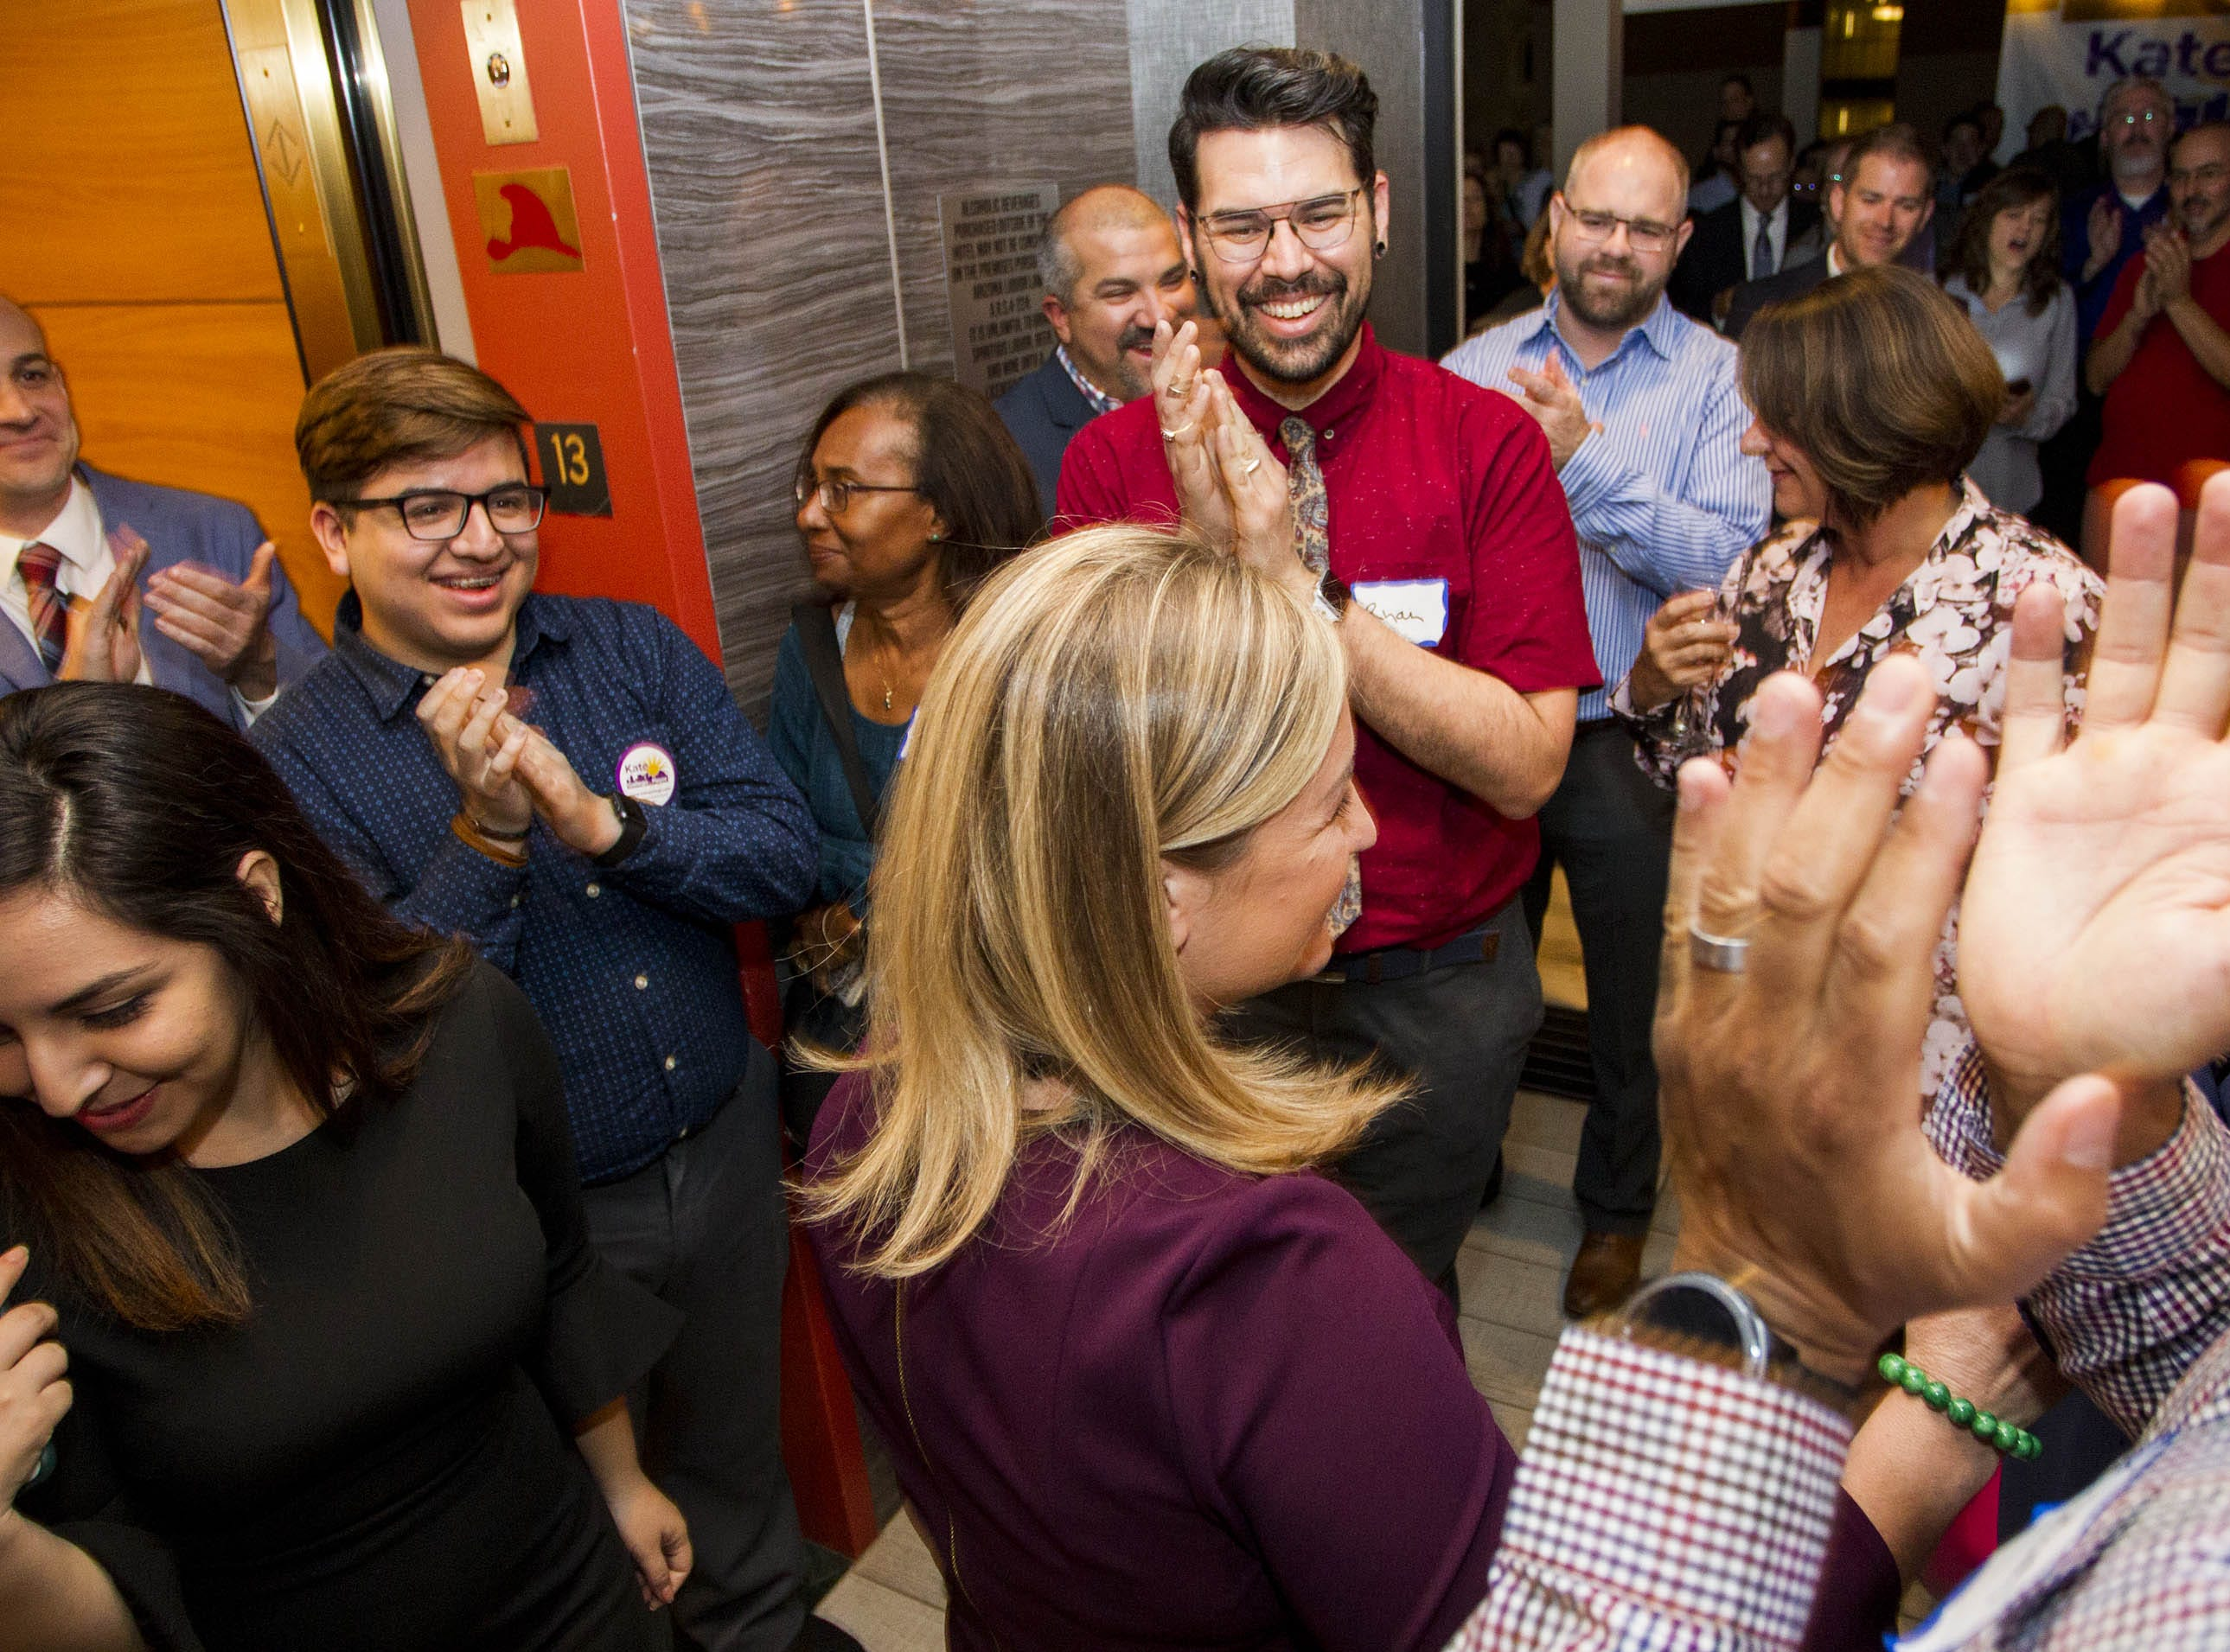 Phoenix mayoral candidate Kate Gallego gets a round of applause from constituents at the Hilton Garden Inn in Phoenix on Nov. 6, 2018.